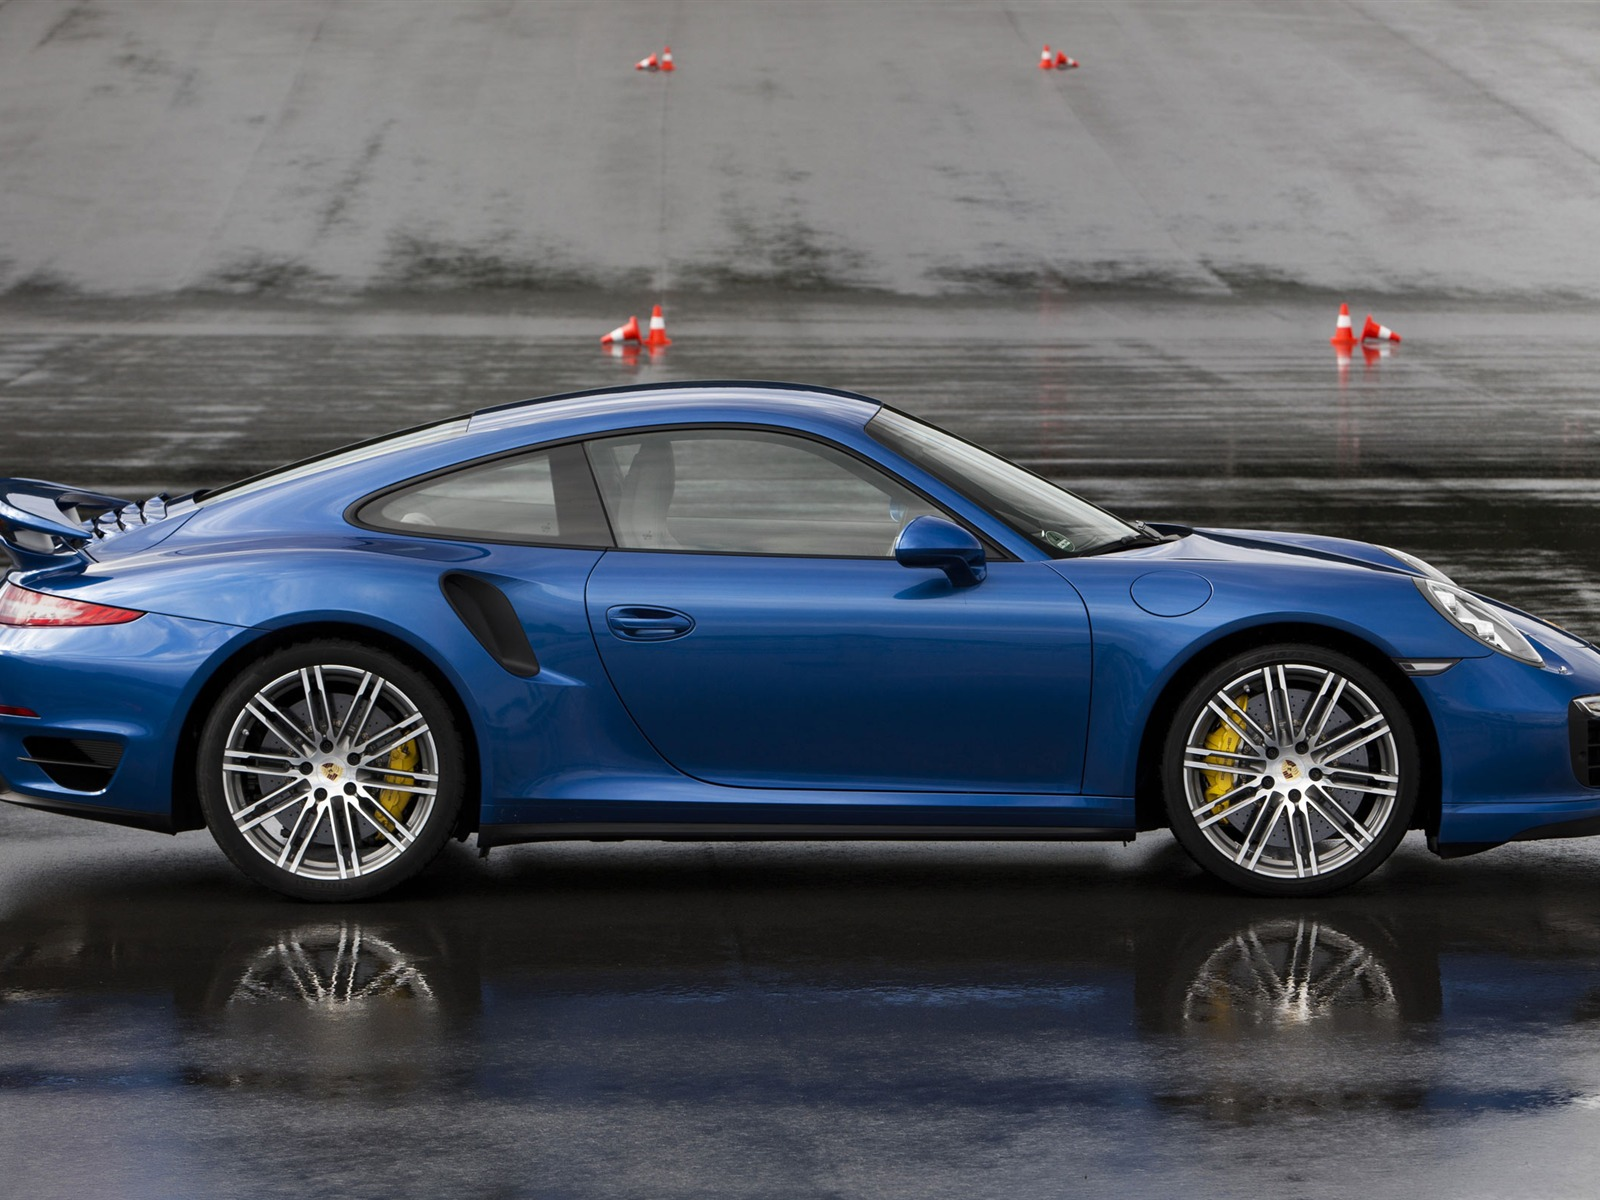 wallpaper porsche 911 turbo s 2014 images